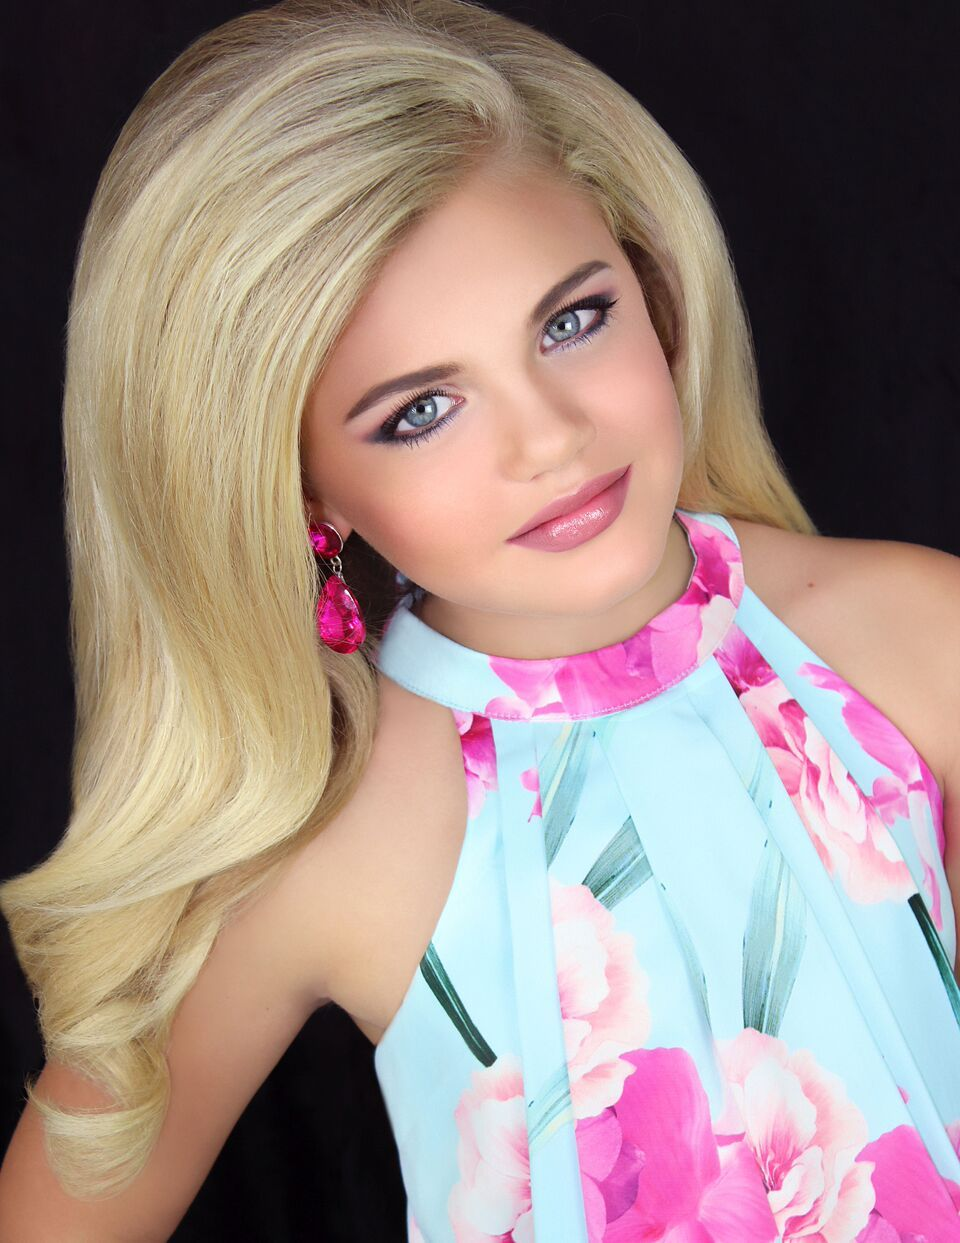 Pin on Pageant Headshots for PreTeen and Younger